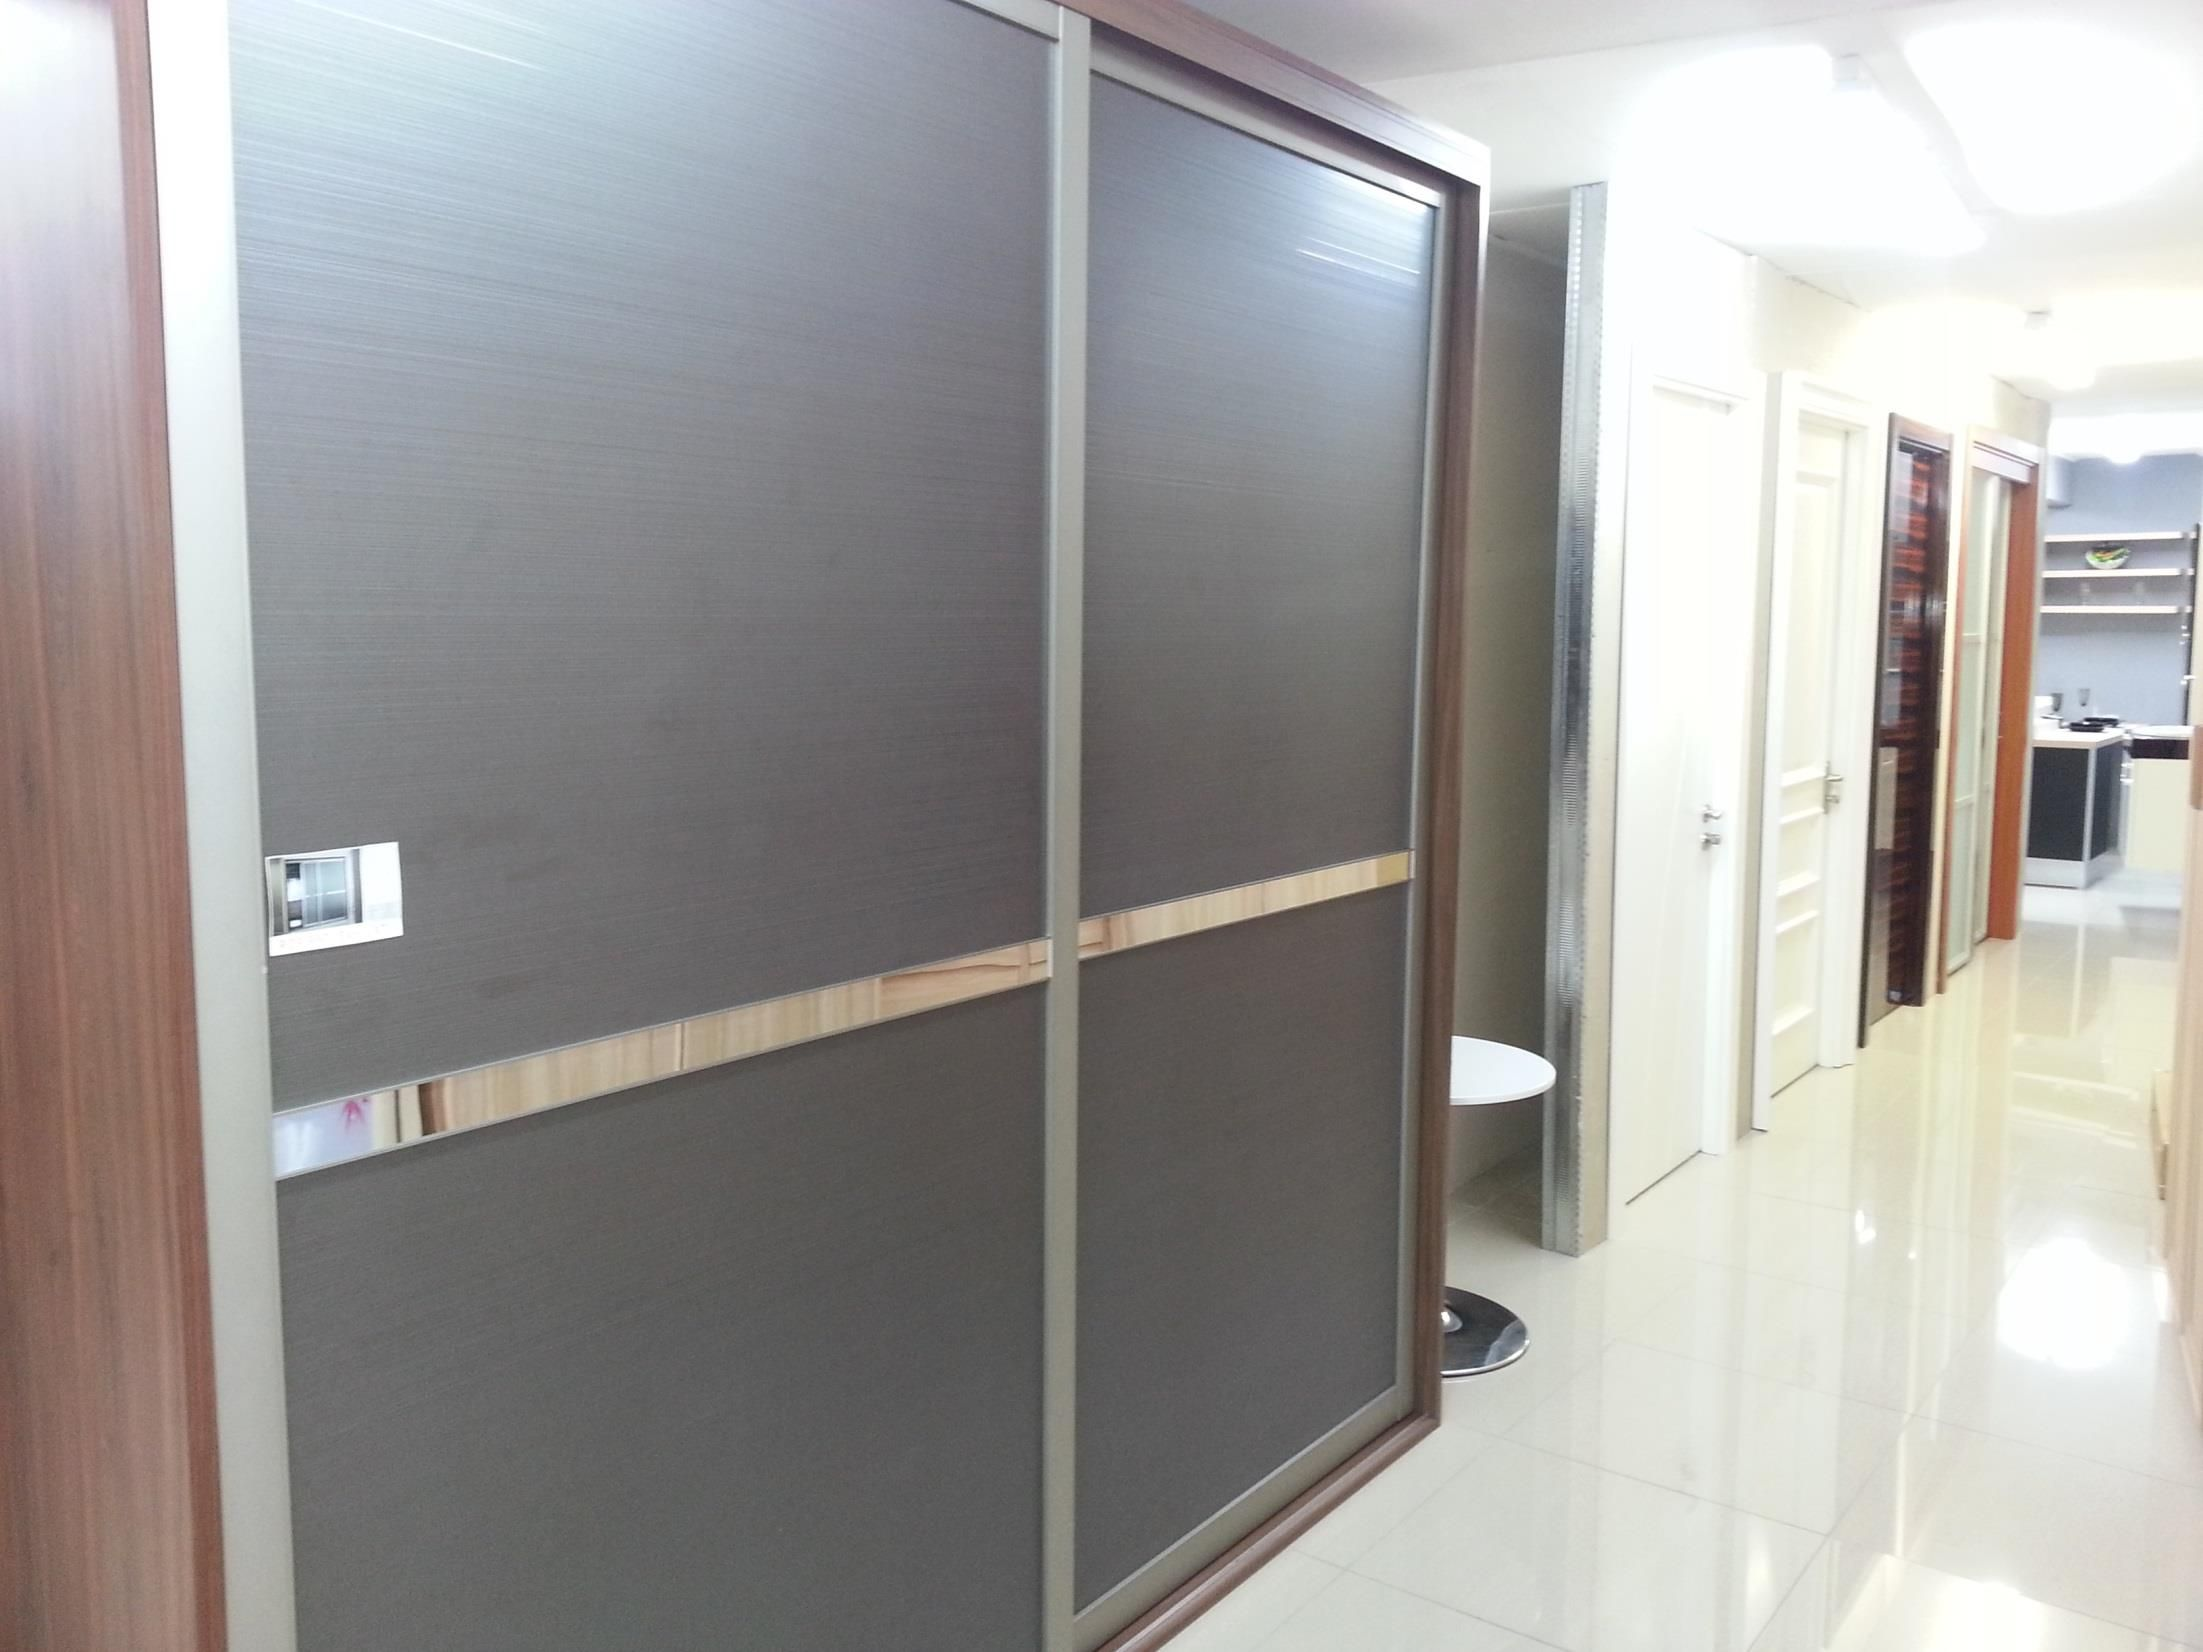 Loft bedroom fitted wardrobes   Sliding Doors for Builtin Wardrobe from oppeinhome  OPPEIN